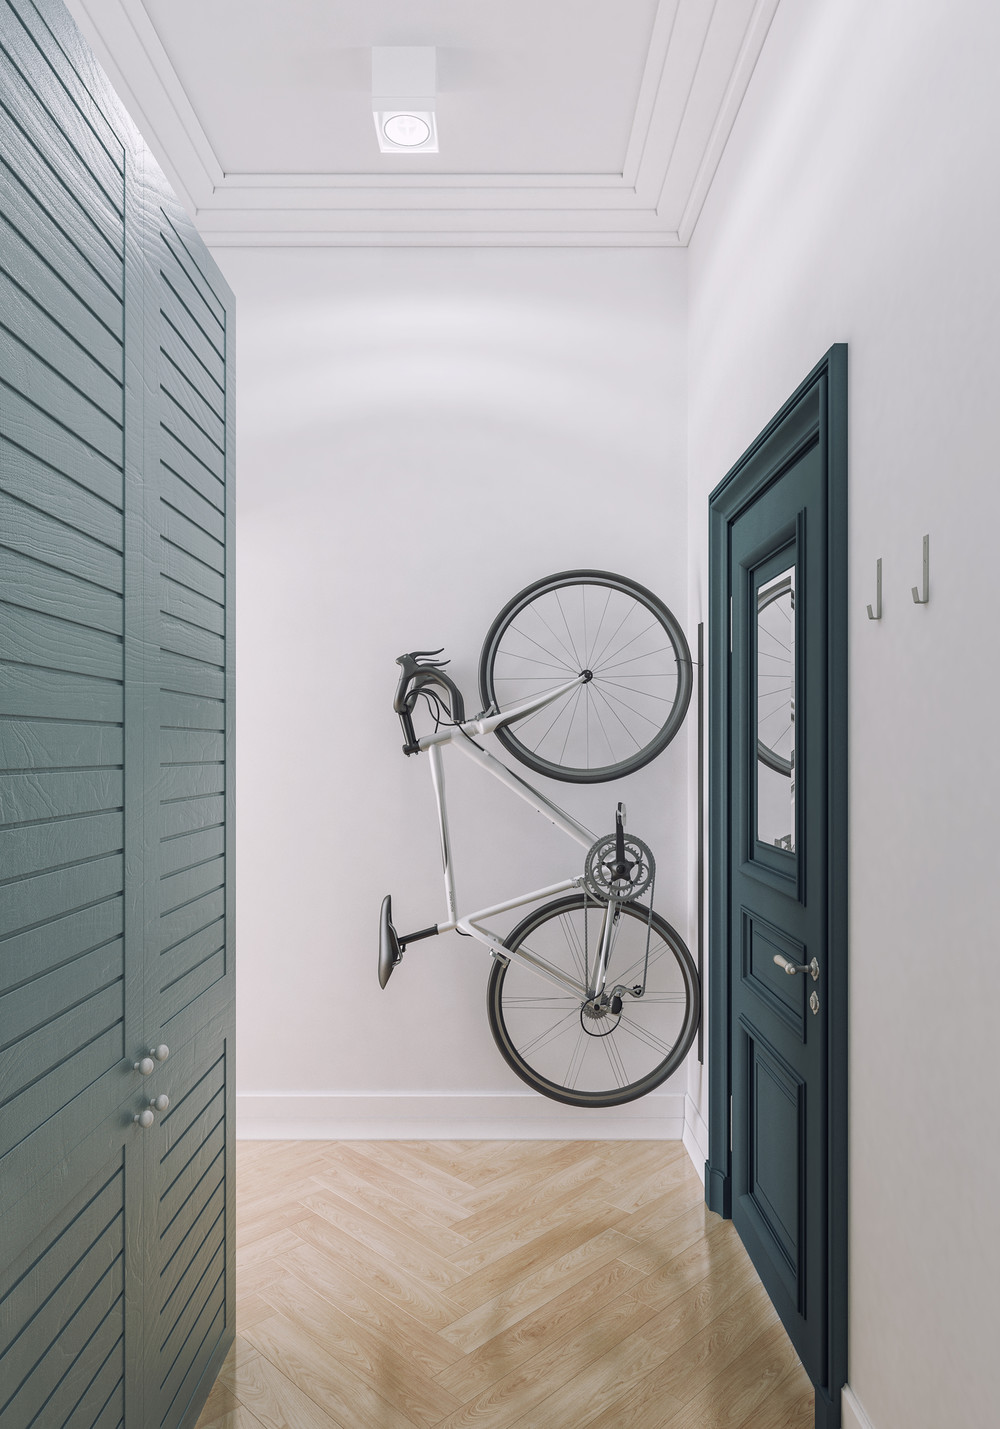 Stylish Bike Rack For Small Apartment - 4 small apartments showcase the flexibility of compact design